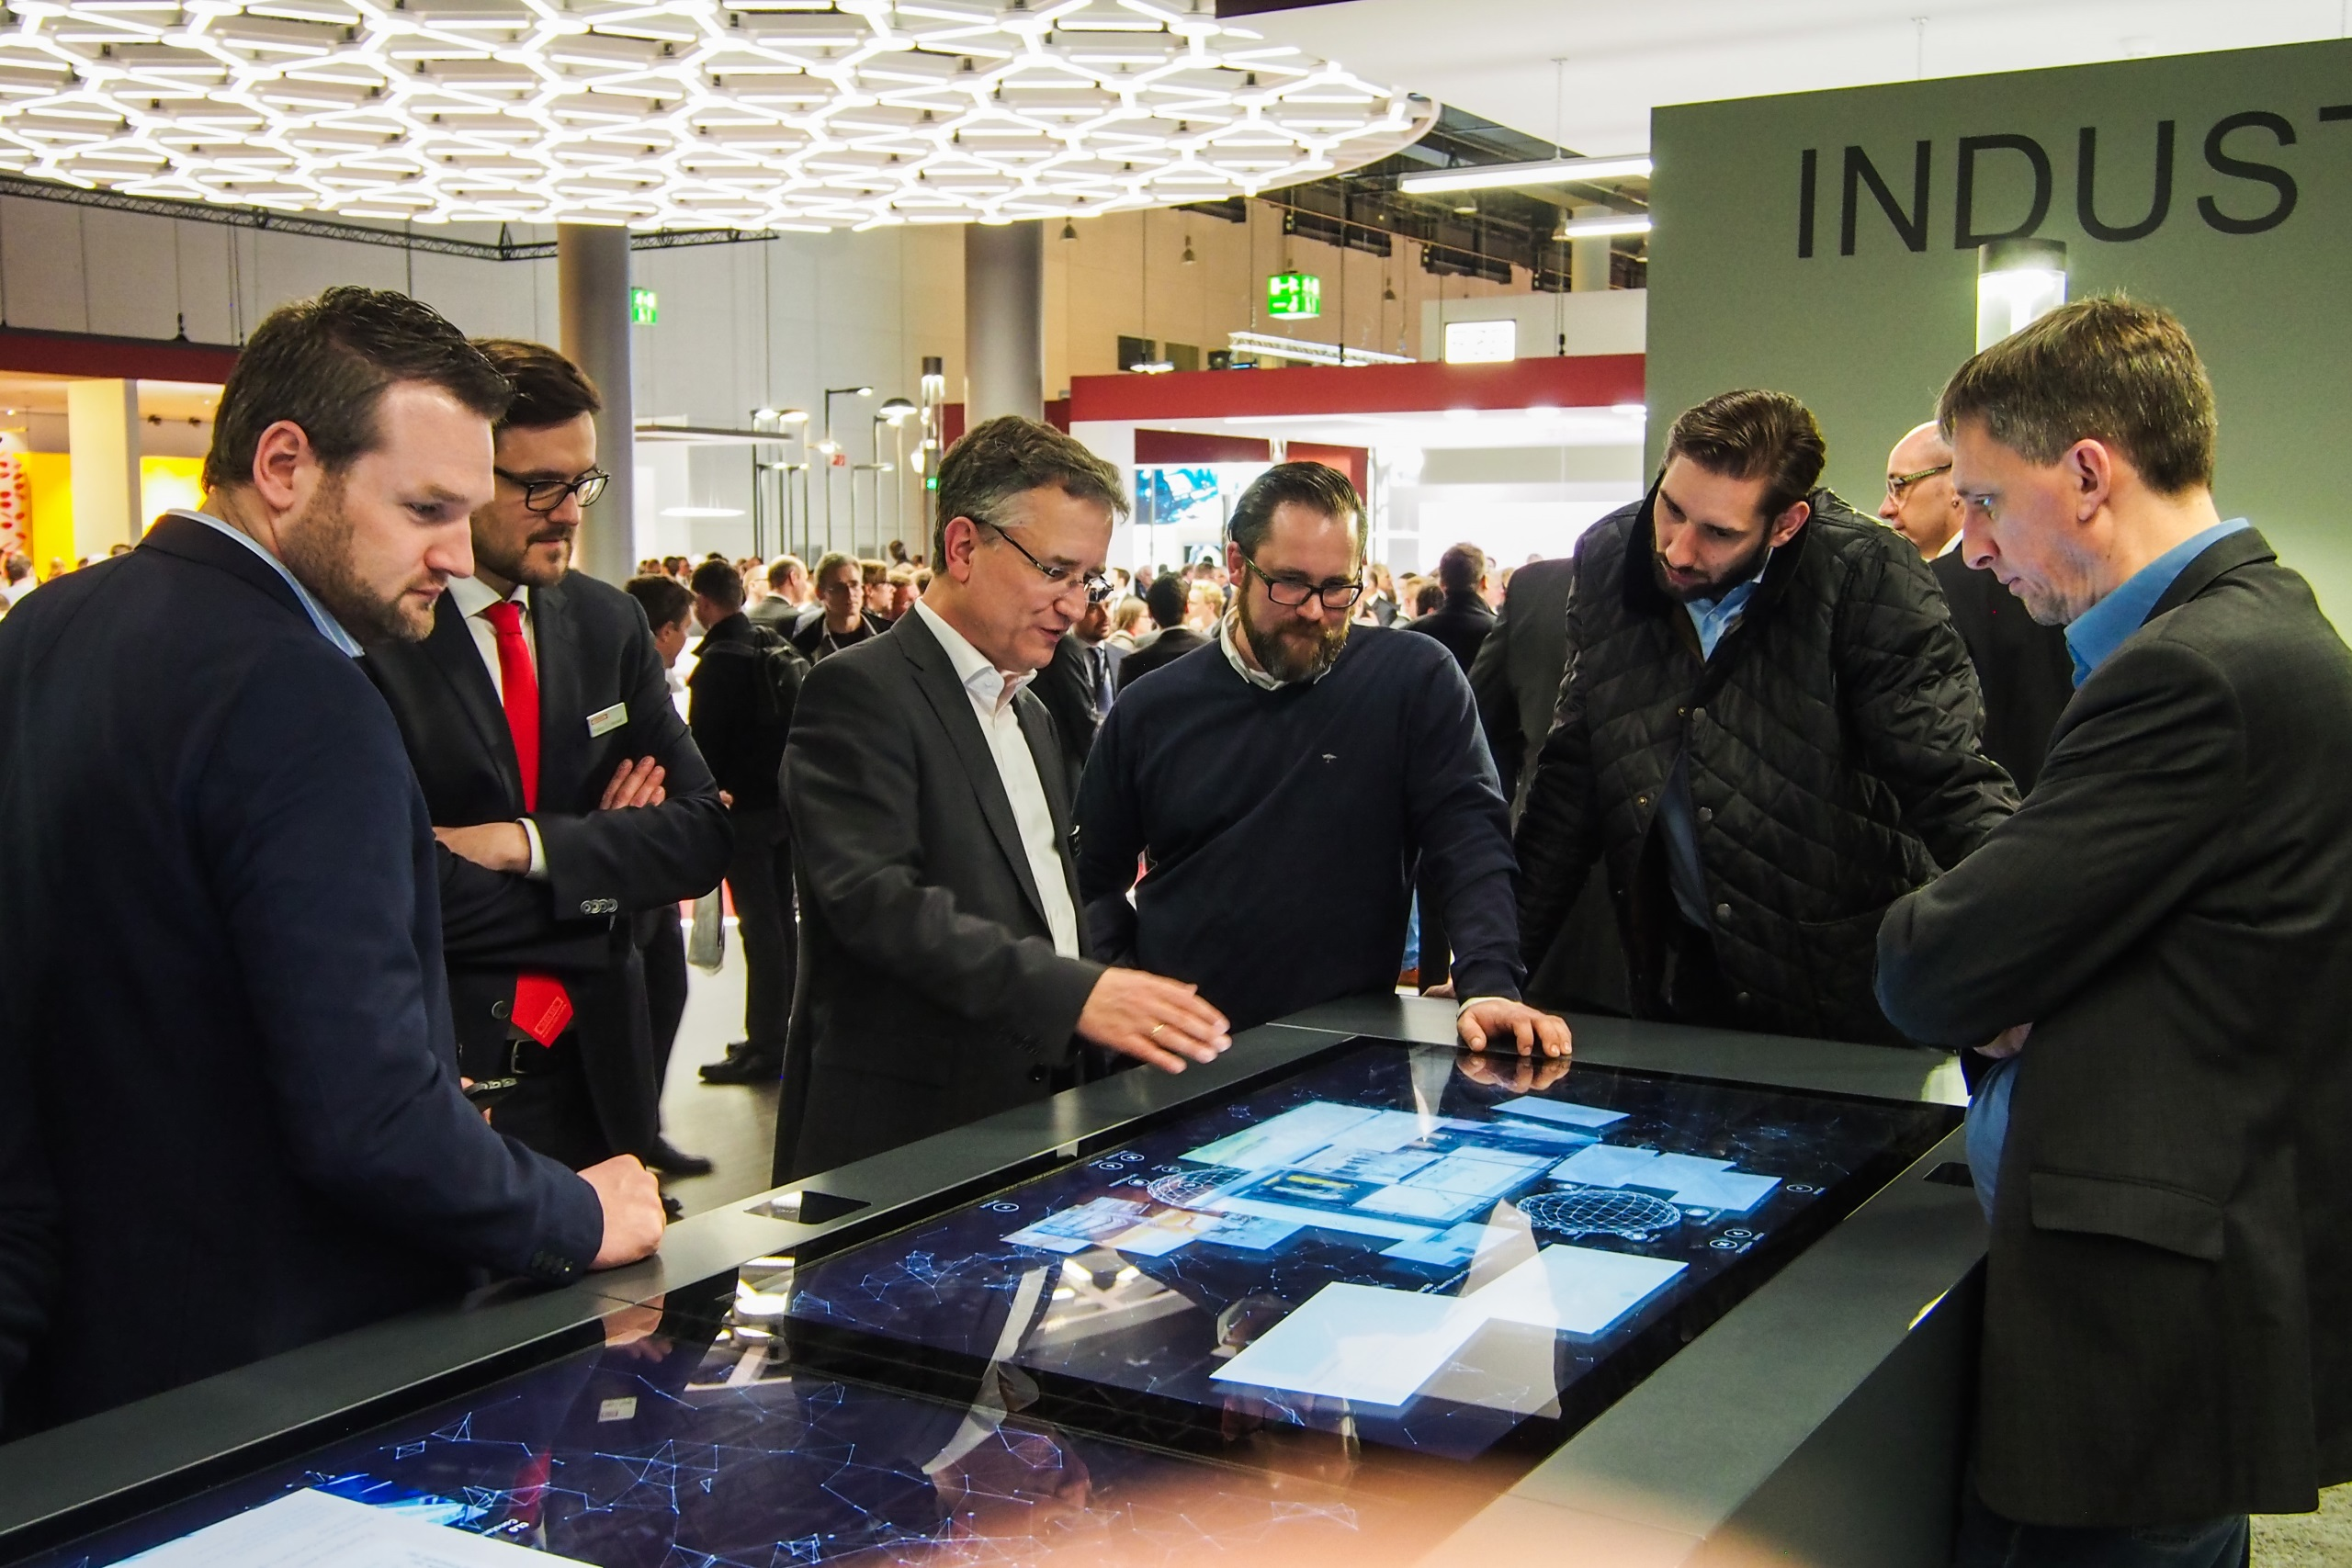 trilux unity trade fair application booth with multitouch table